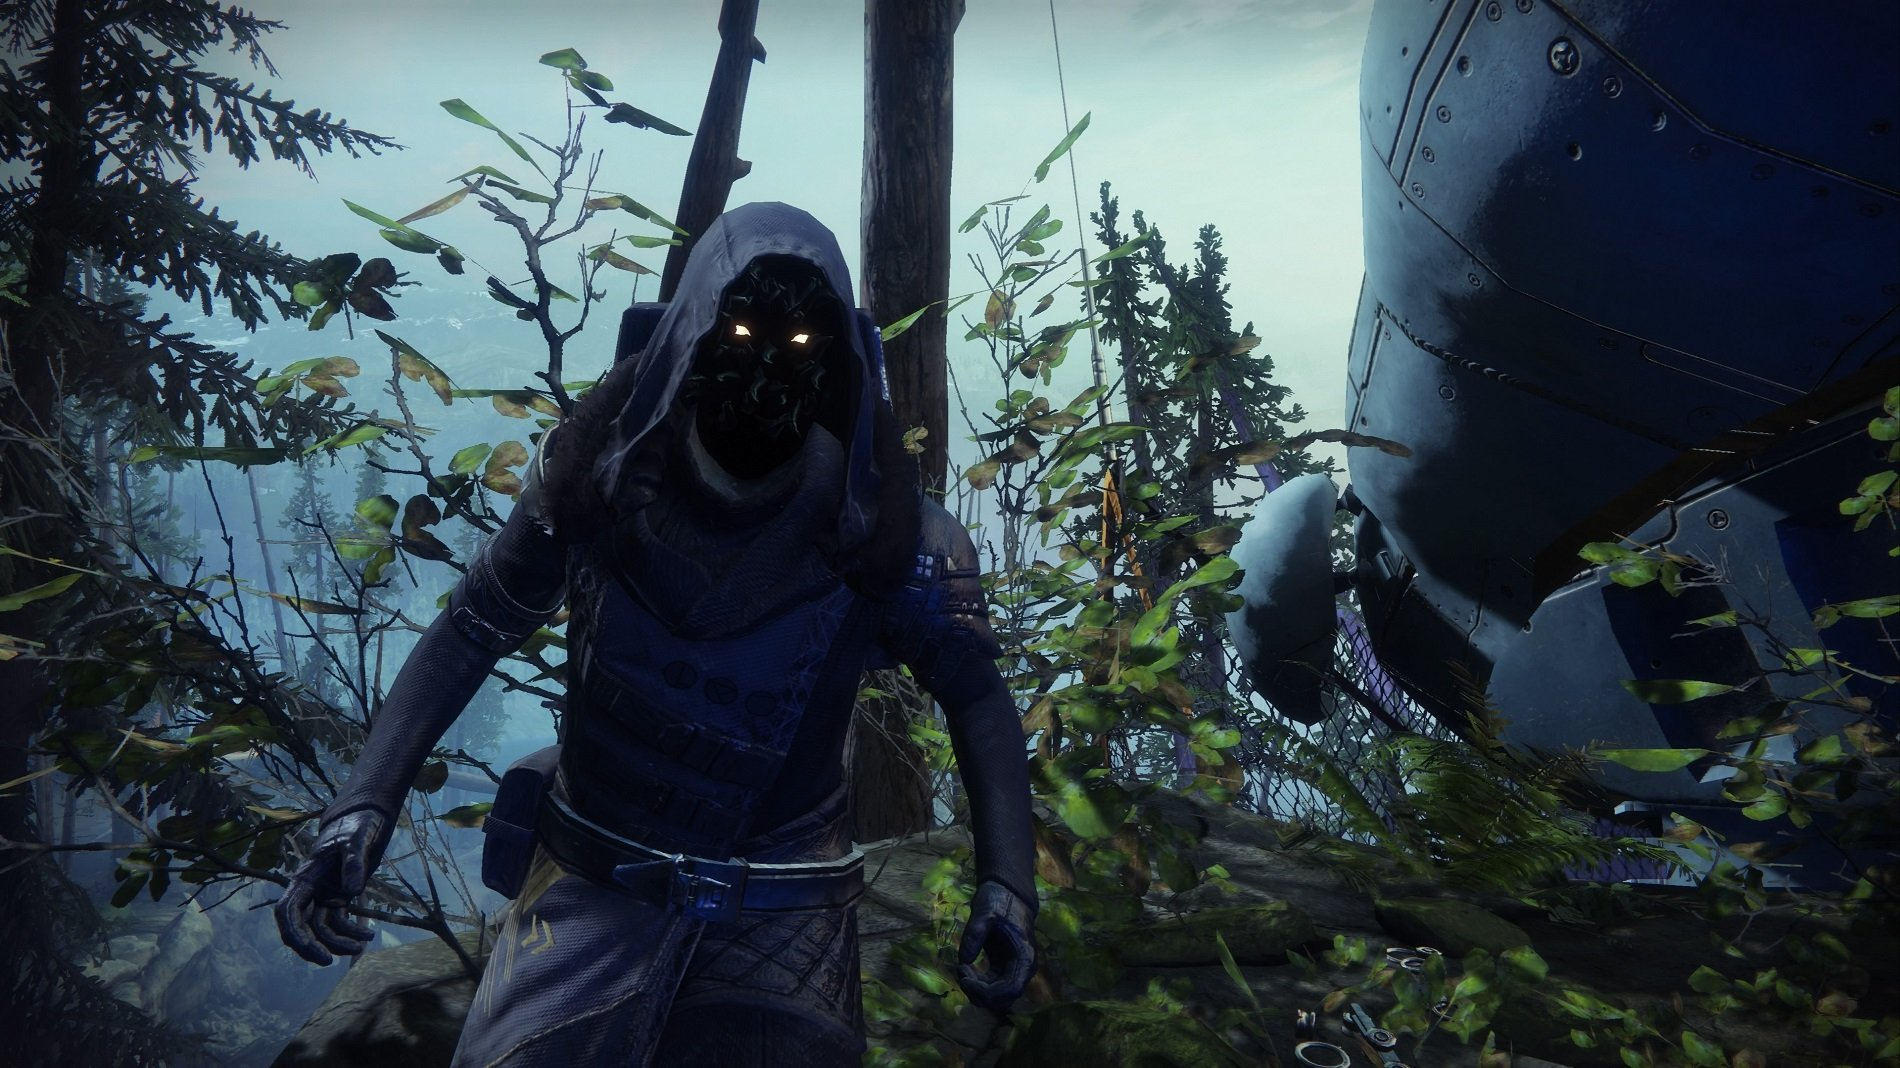 Where to find Xur in Destiny 2 - June 26, 2020